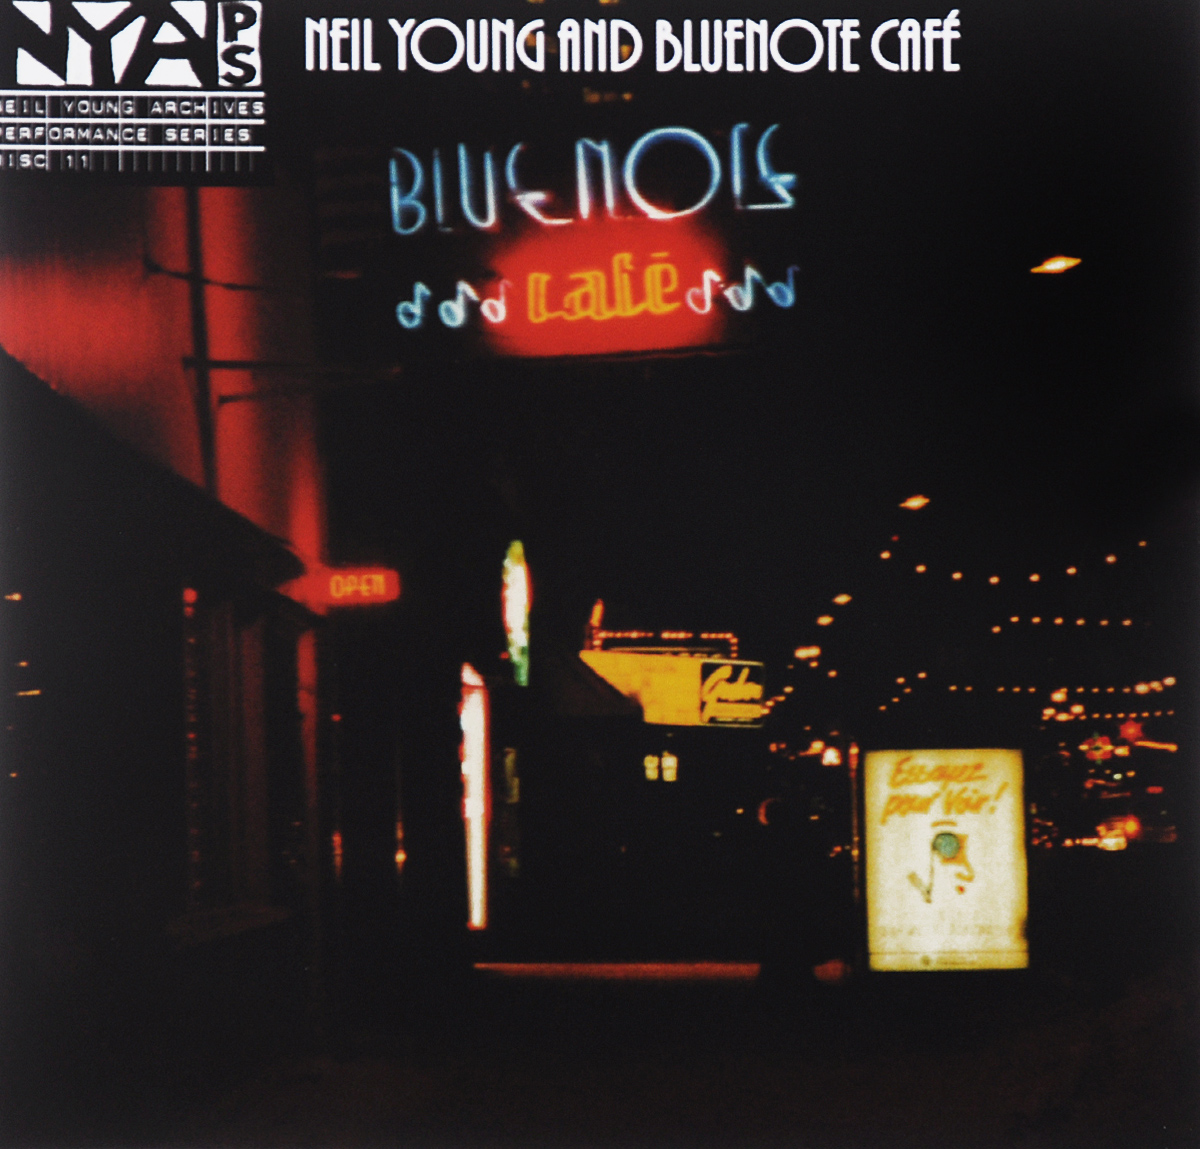 "Нил Янг,""The Bluenotes"" Neil Young And Bluenote. Bluenote Cafe (2 CD)"